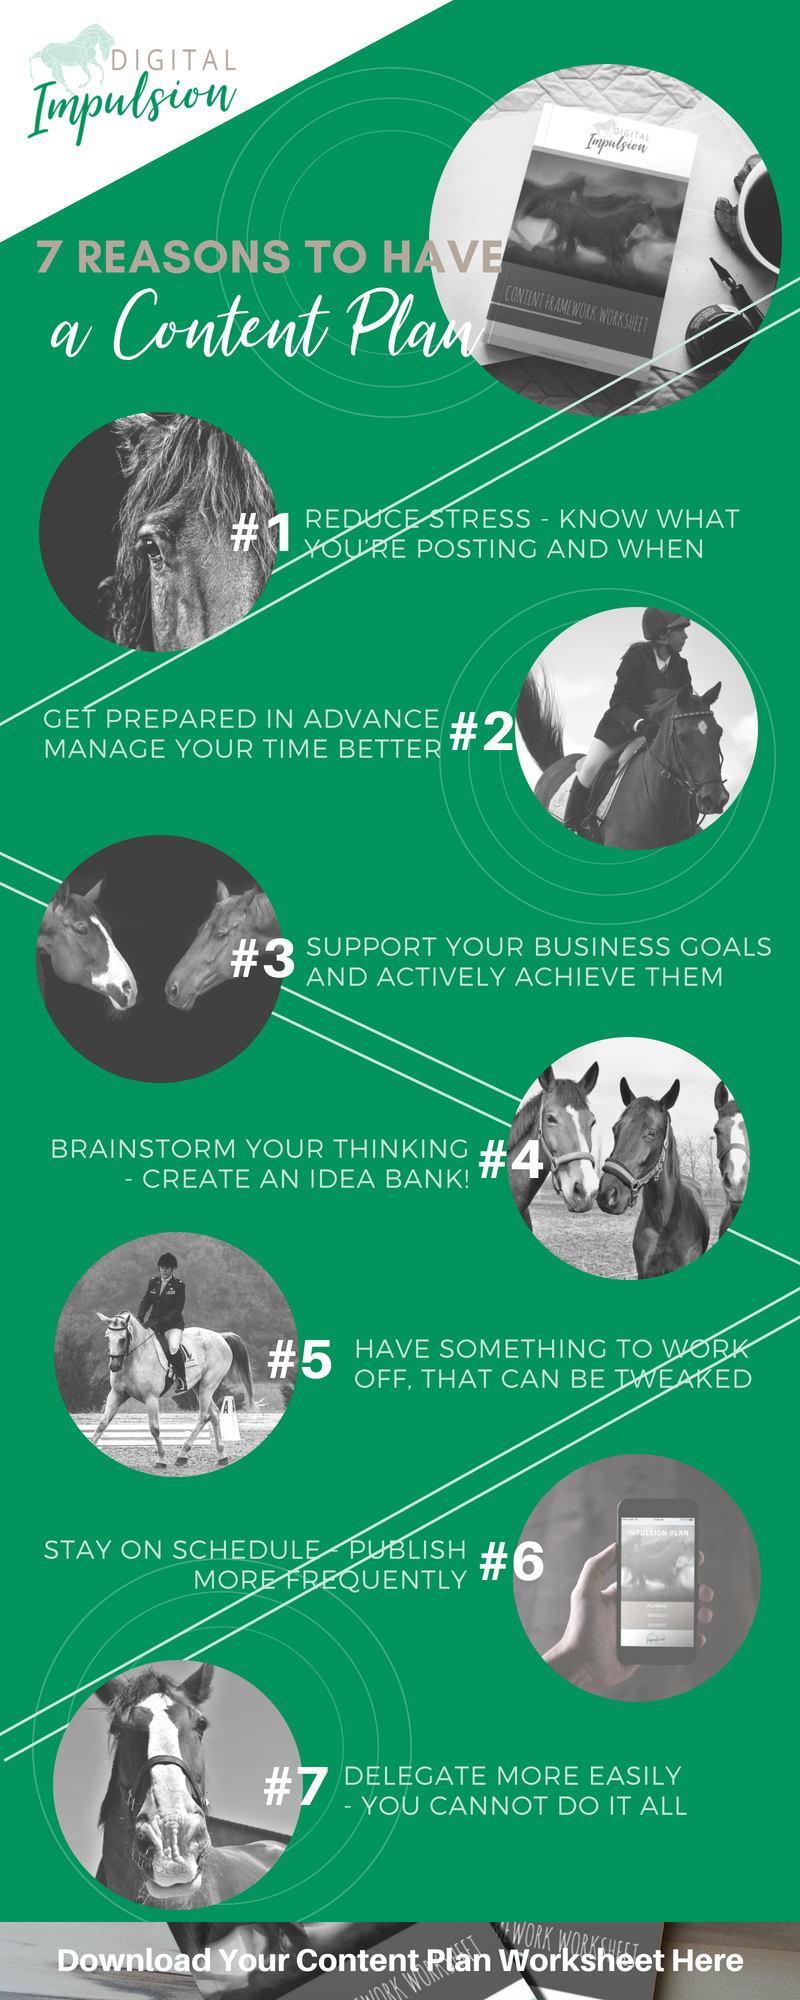 7 reasons to have a content plan.png